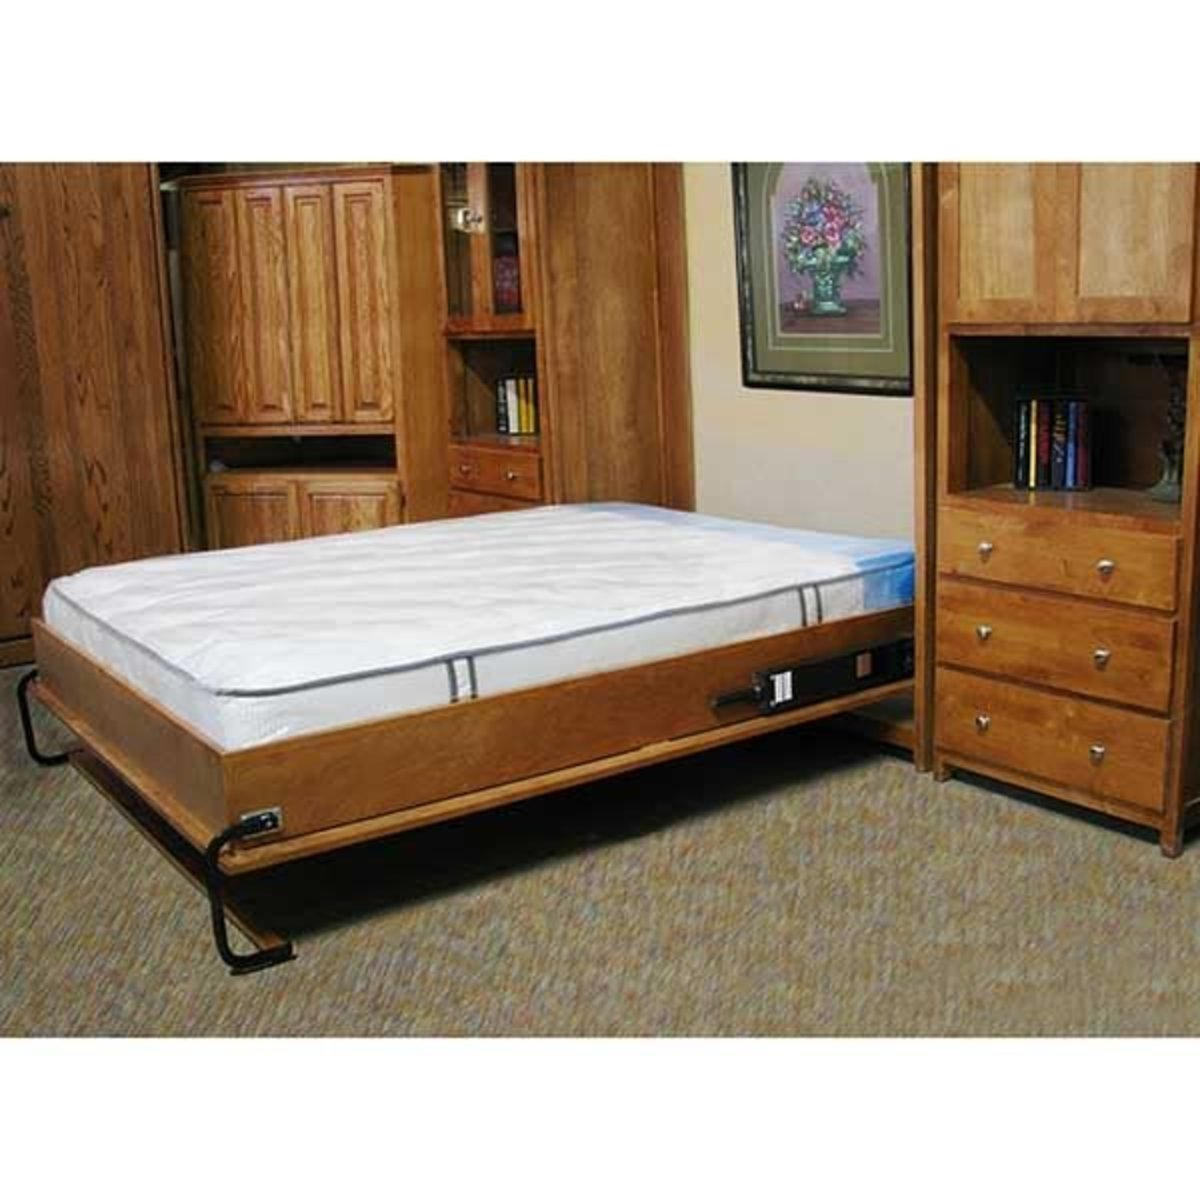 Selby Cabinet Wall Bed Mechanism For Use With Twin Size Mattress Inside Mount